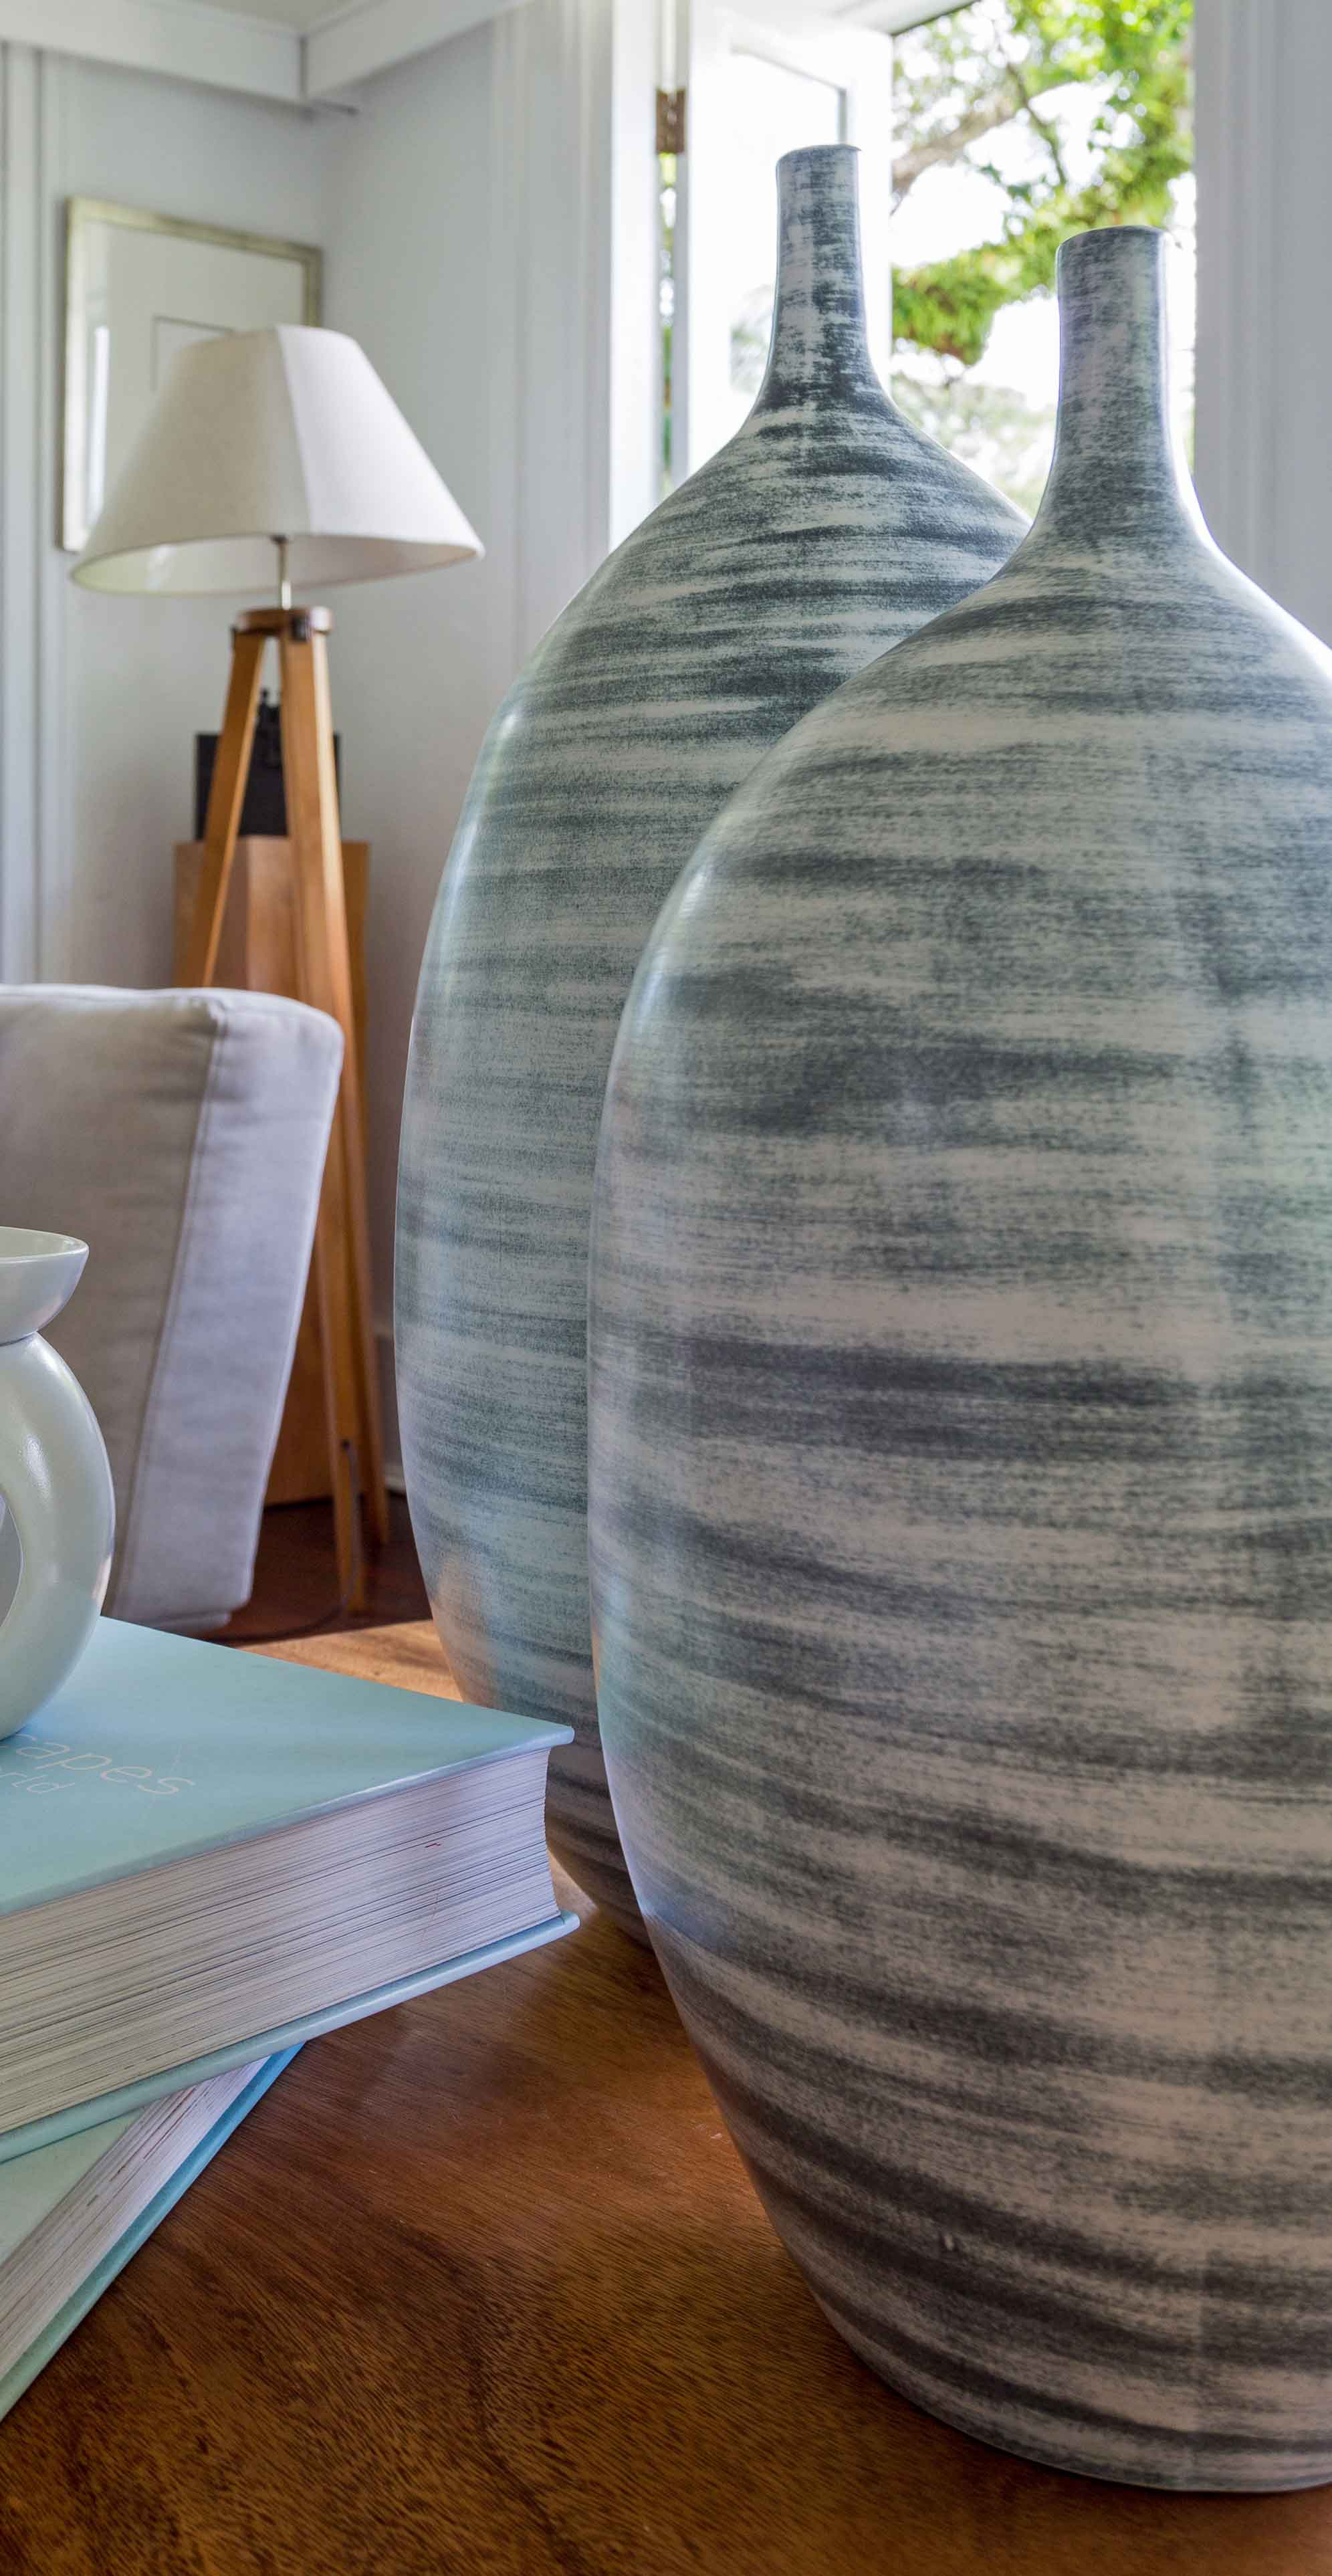 Abstract Vases - Made by talented artisans in Bali, this boutique stoneware ceramic vase was designed to last a lifetime.